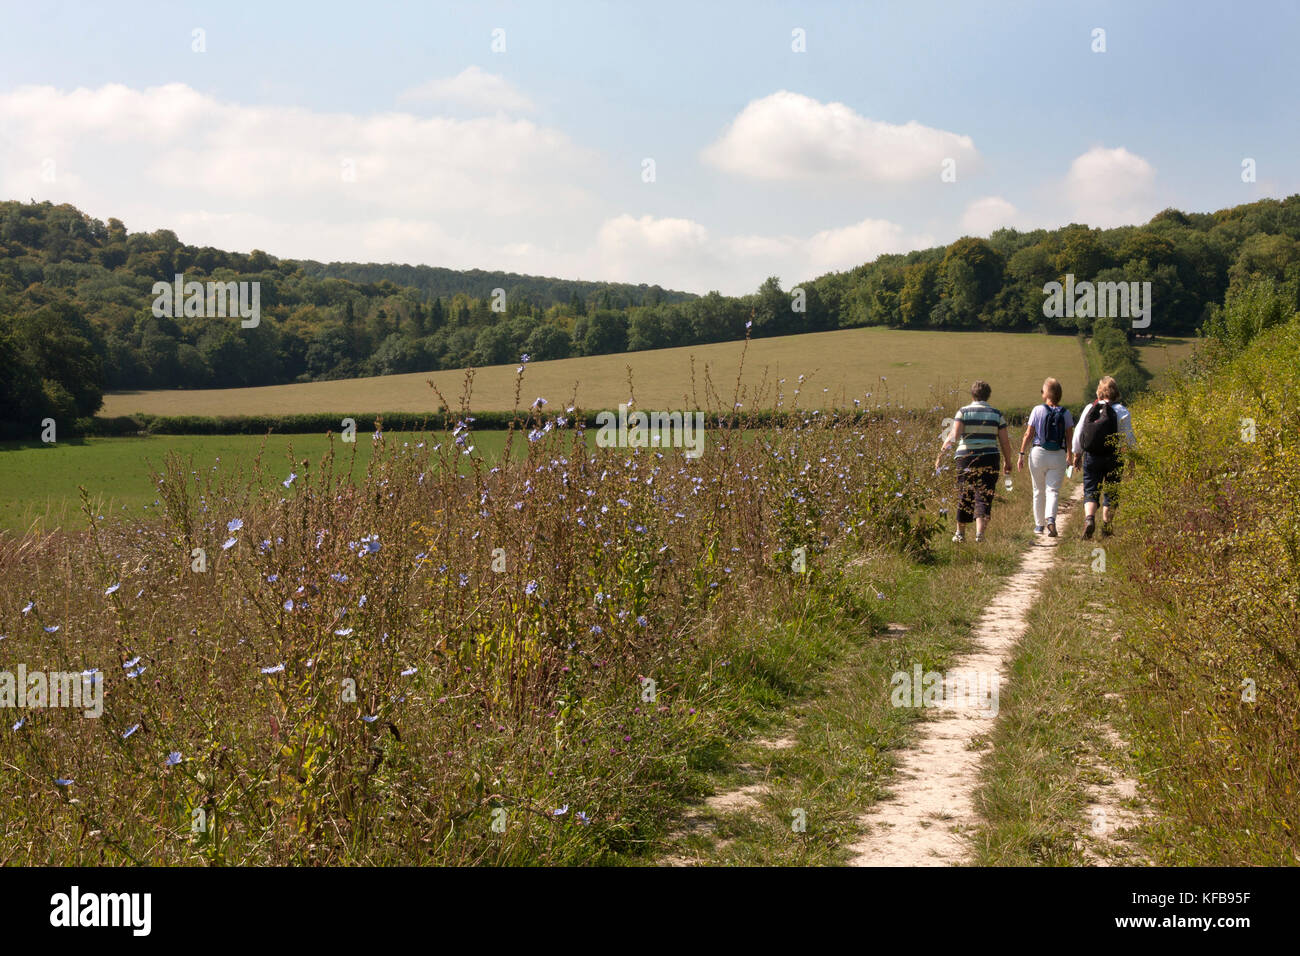 organically managed clover pastures created for wildlife & bio diversity, the Chilterns at Turville, Buckinghamshire - Stock Image